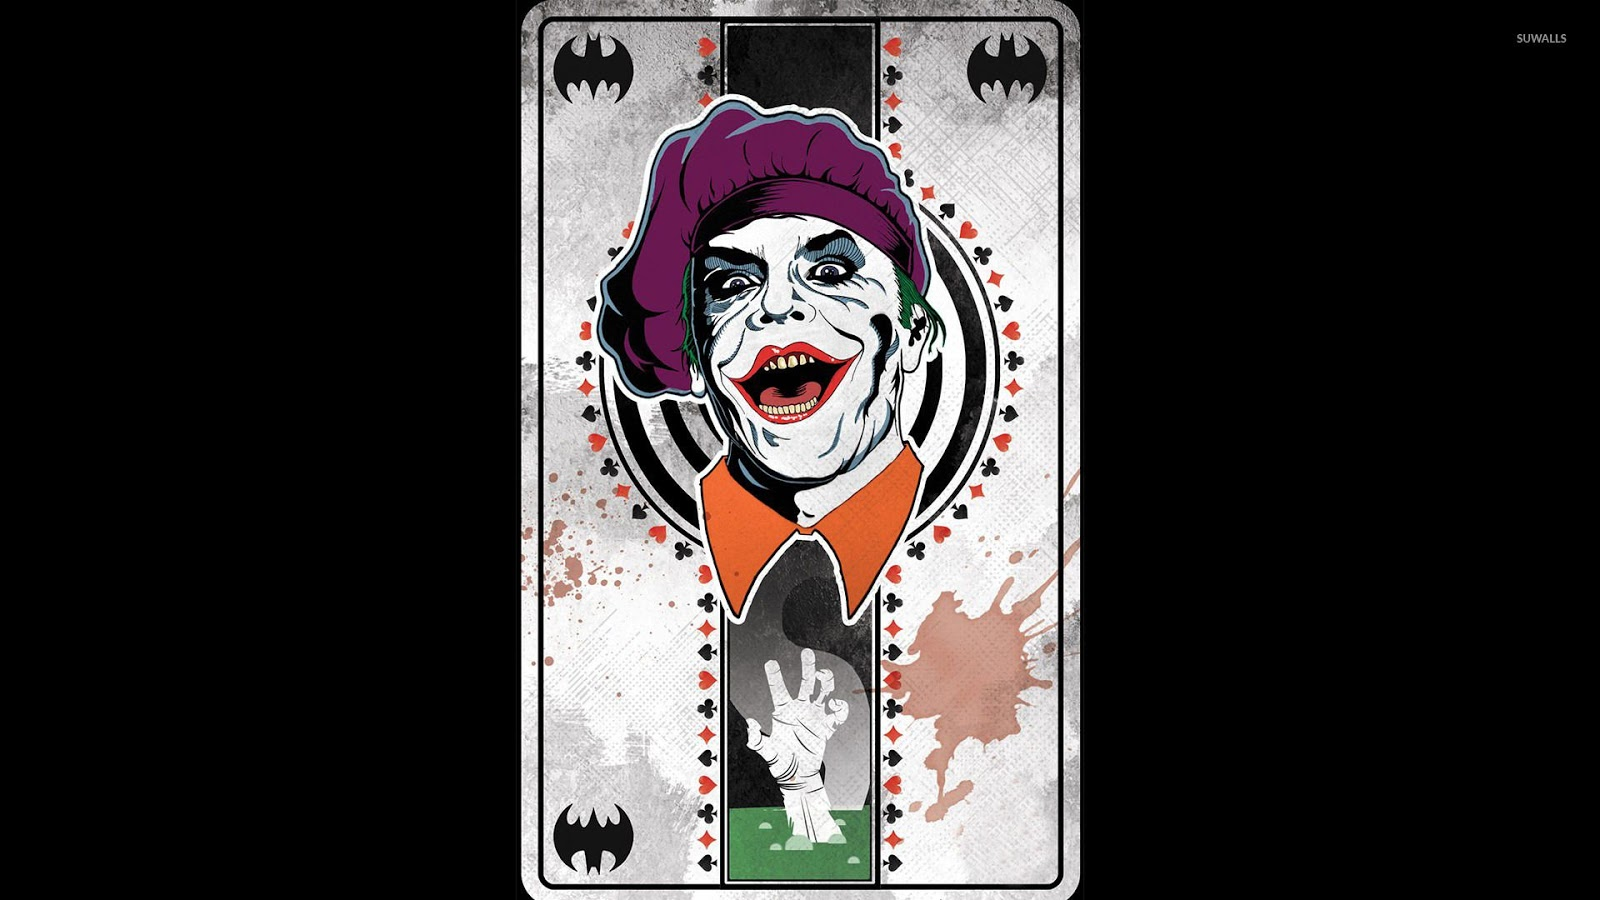 joker-wallpaper-for-phone